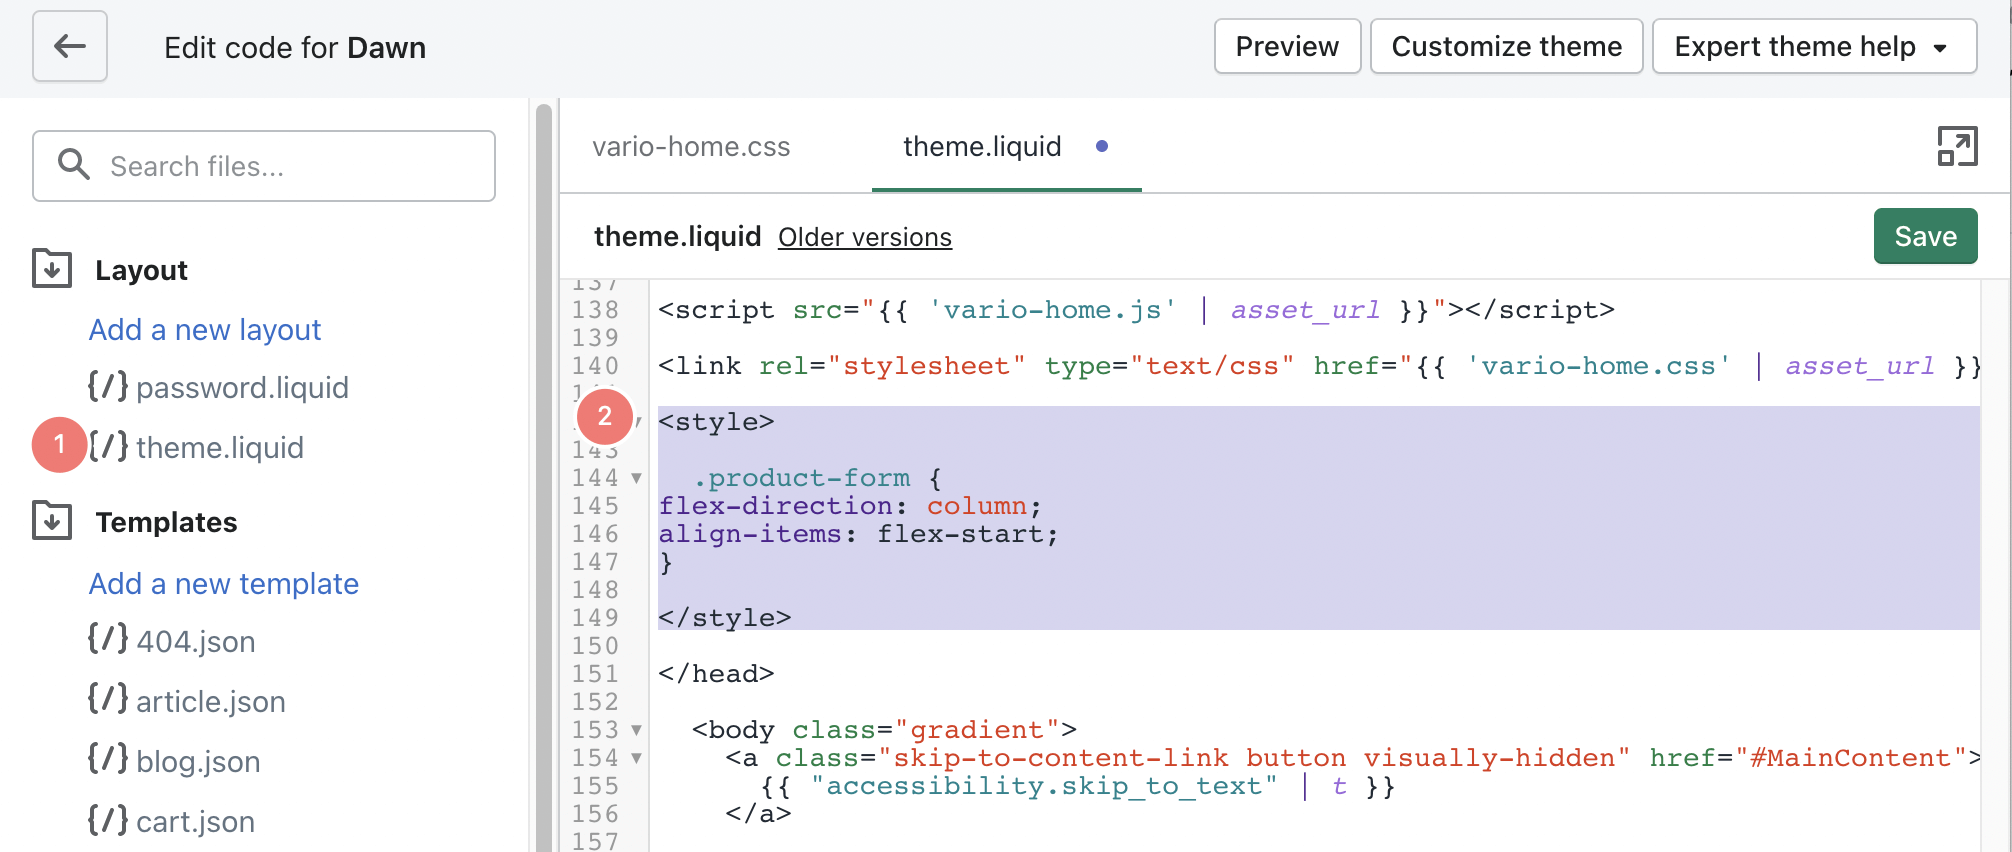 Adding CSS snippets between the style and head tags